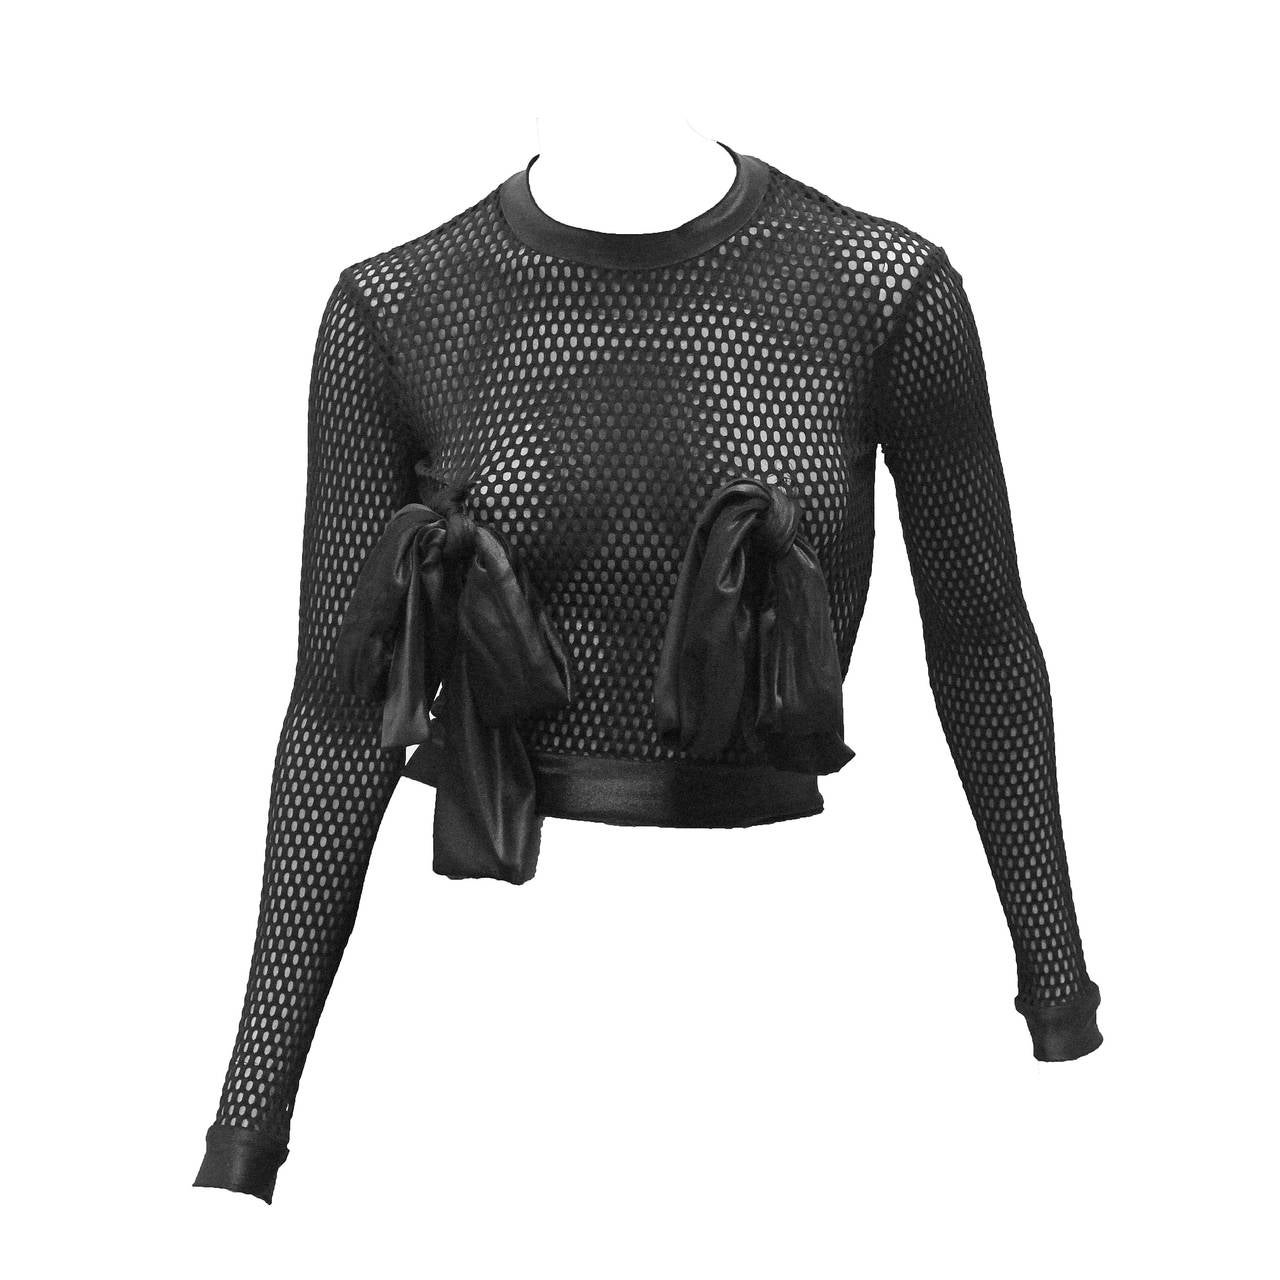 Rare 1990s Pam Hogg Mesh Bow Breast Top 1